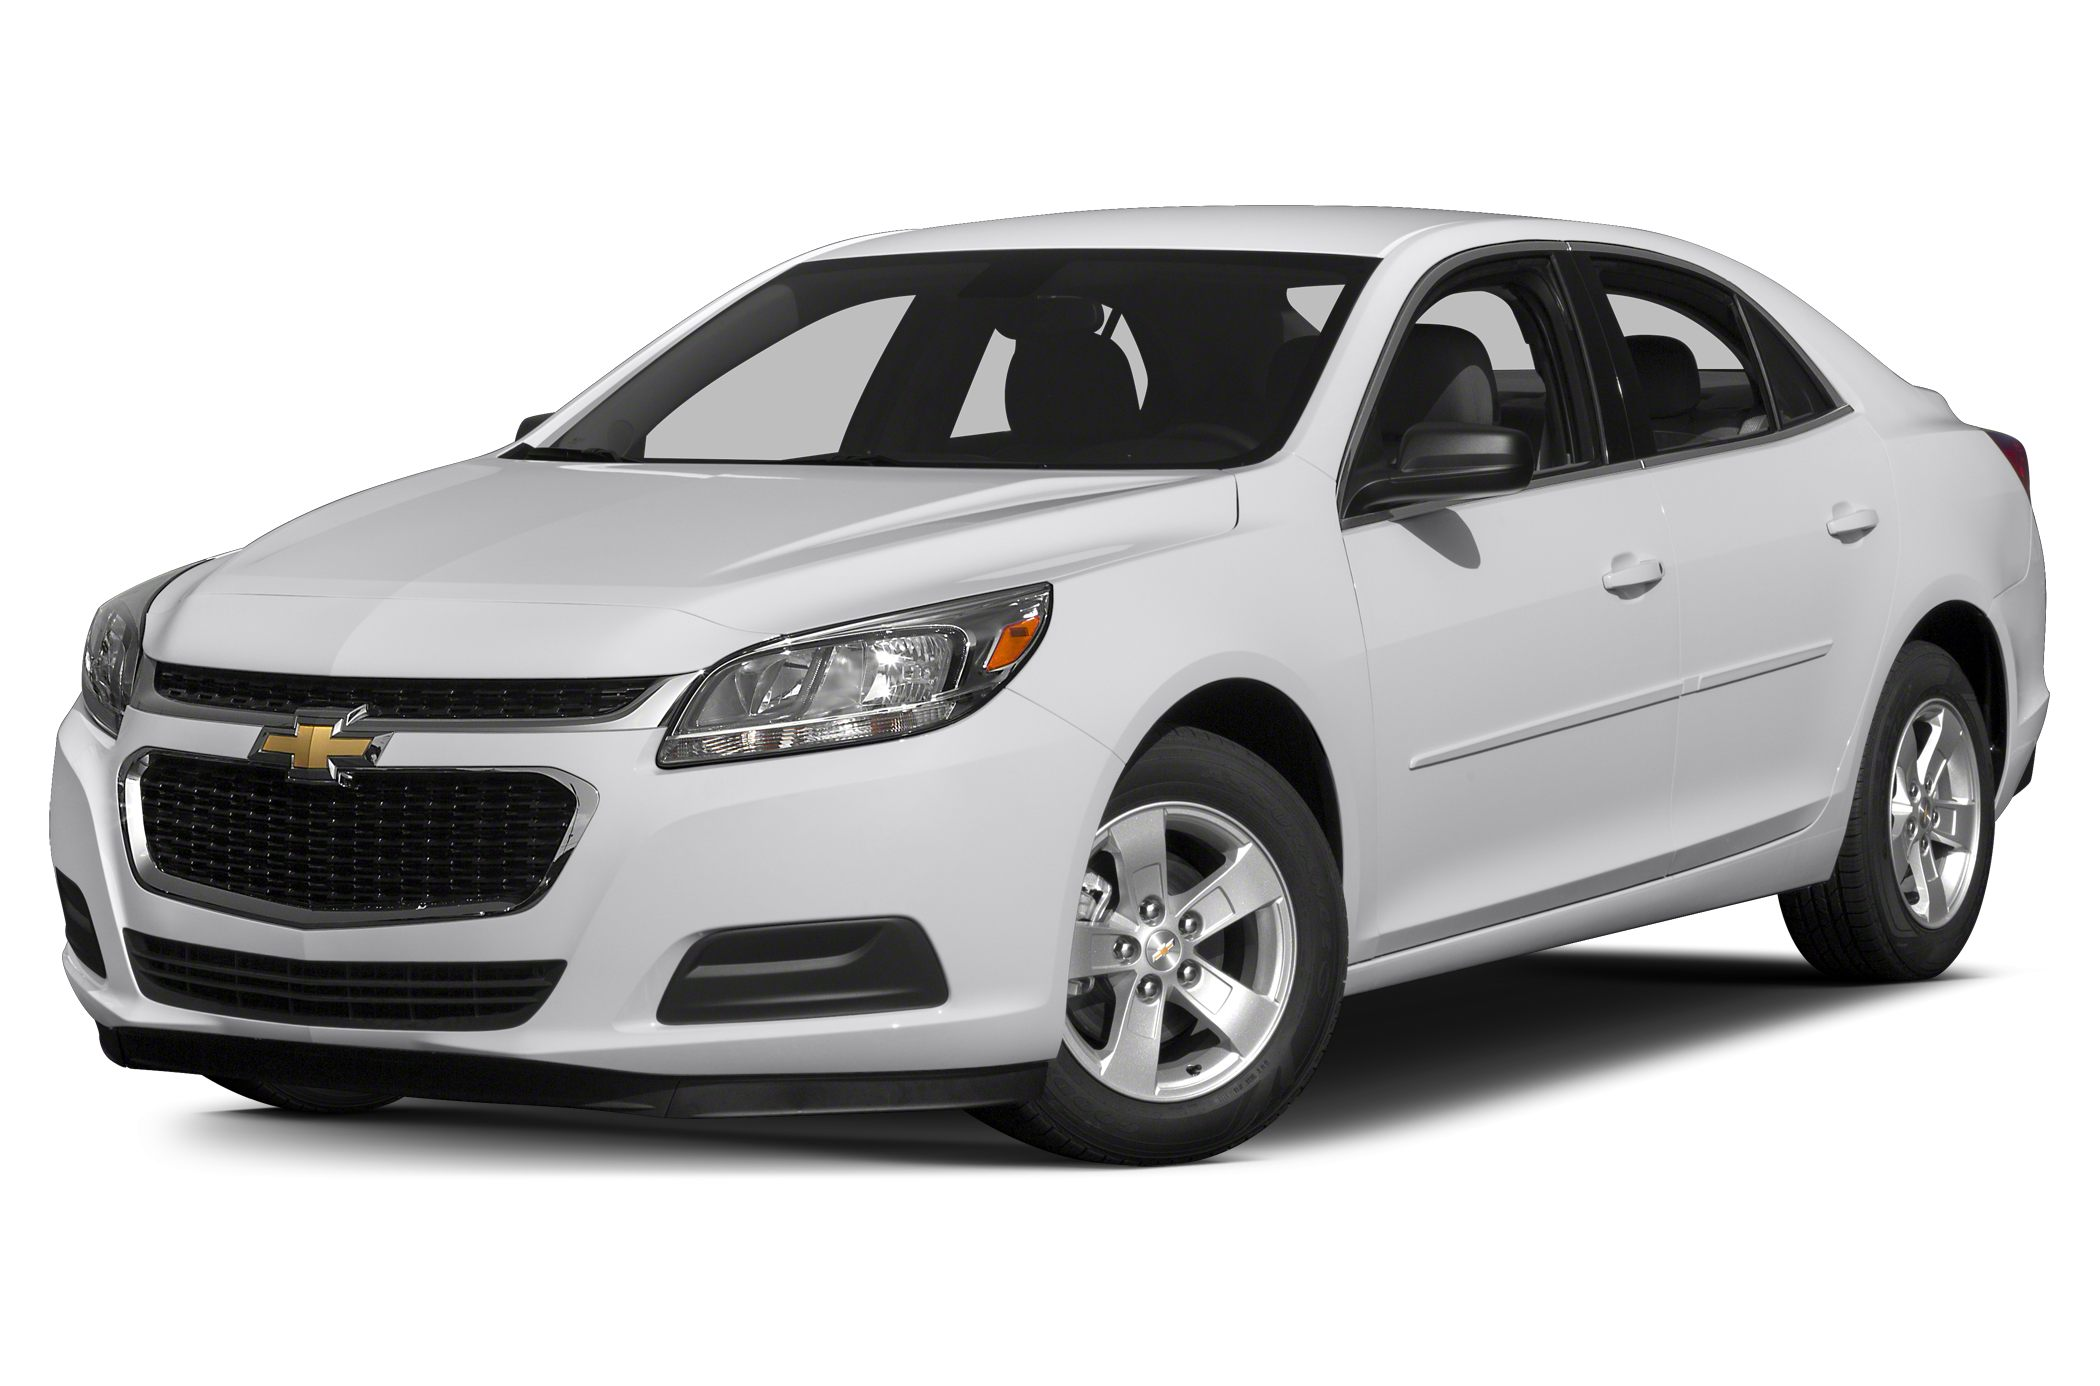 2015 Chevrolet Malibu LS Sedan for sale in Brandon for $23,580 with 0 miles